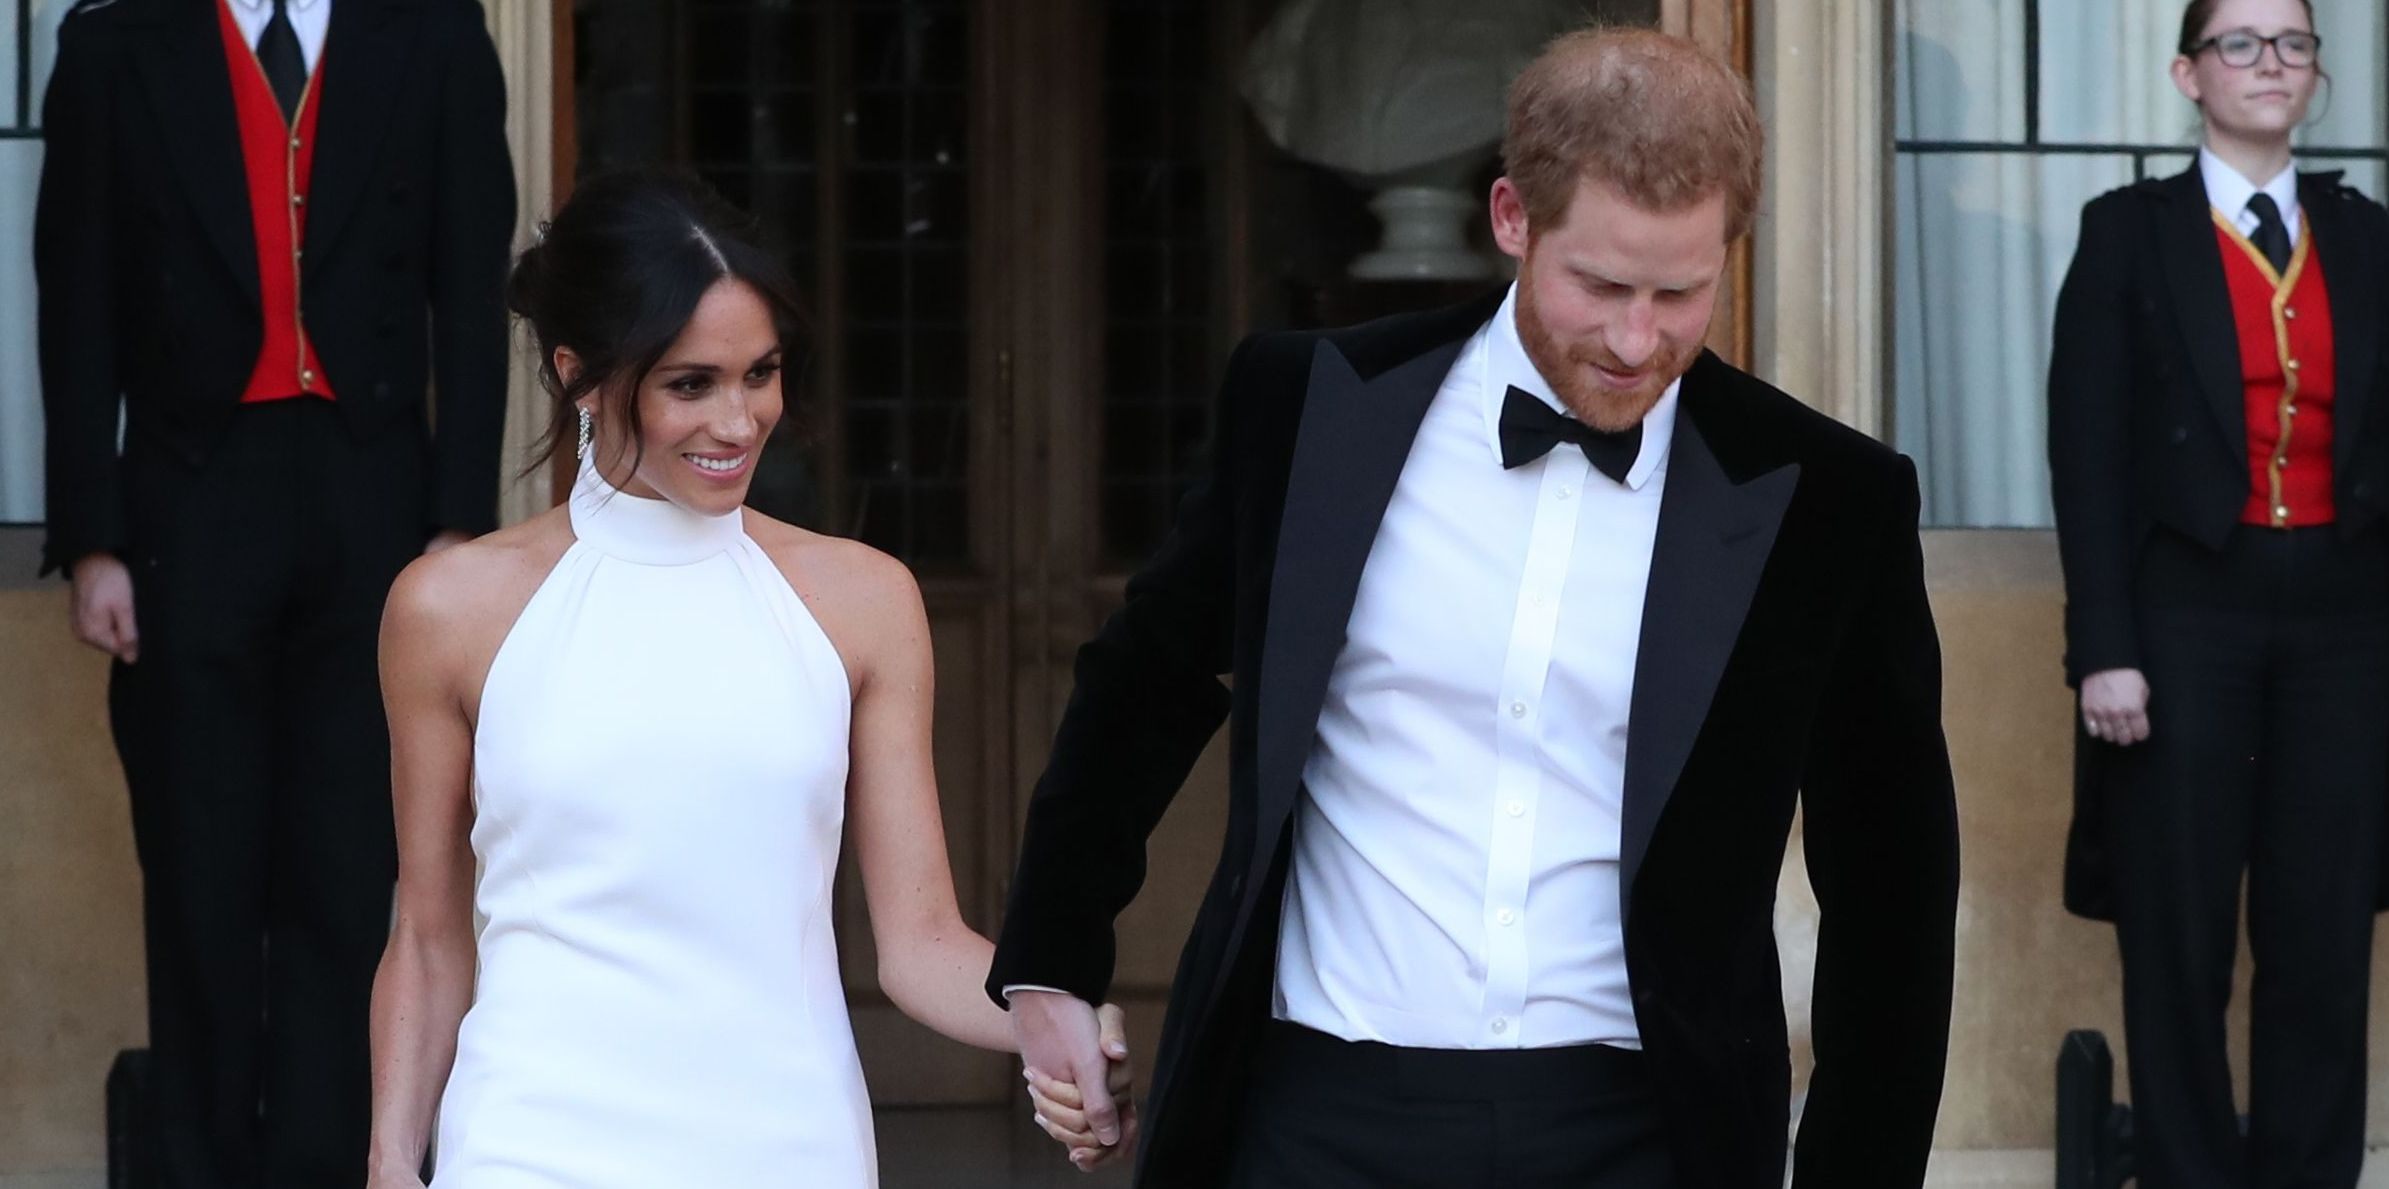 Meghan Markle Second Wedding Dress Pictures Of Meghan Markle S